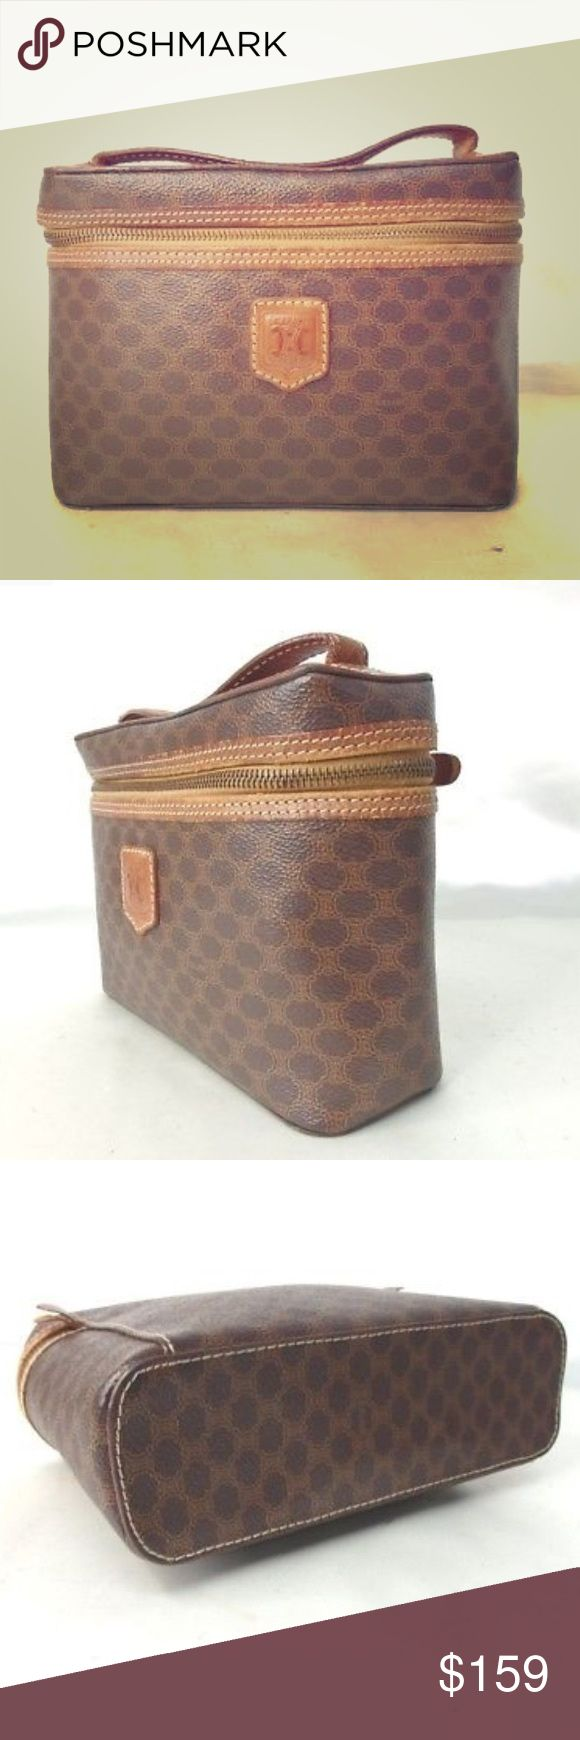 """CELINE vanity case Guaranteed authentic preowned CELINE Brown macadam makeup / vanity case with zip around closure.   Overall in good condition - please see photos before purchasing.   Measures 8.5 x 6 x 3"""".   Bundle to save - any offers please use offer option only Celine Bags Cosmetic Bags & Cases"""